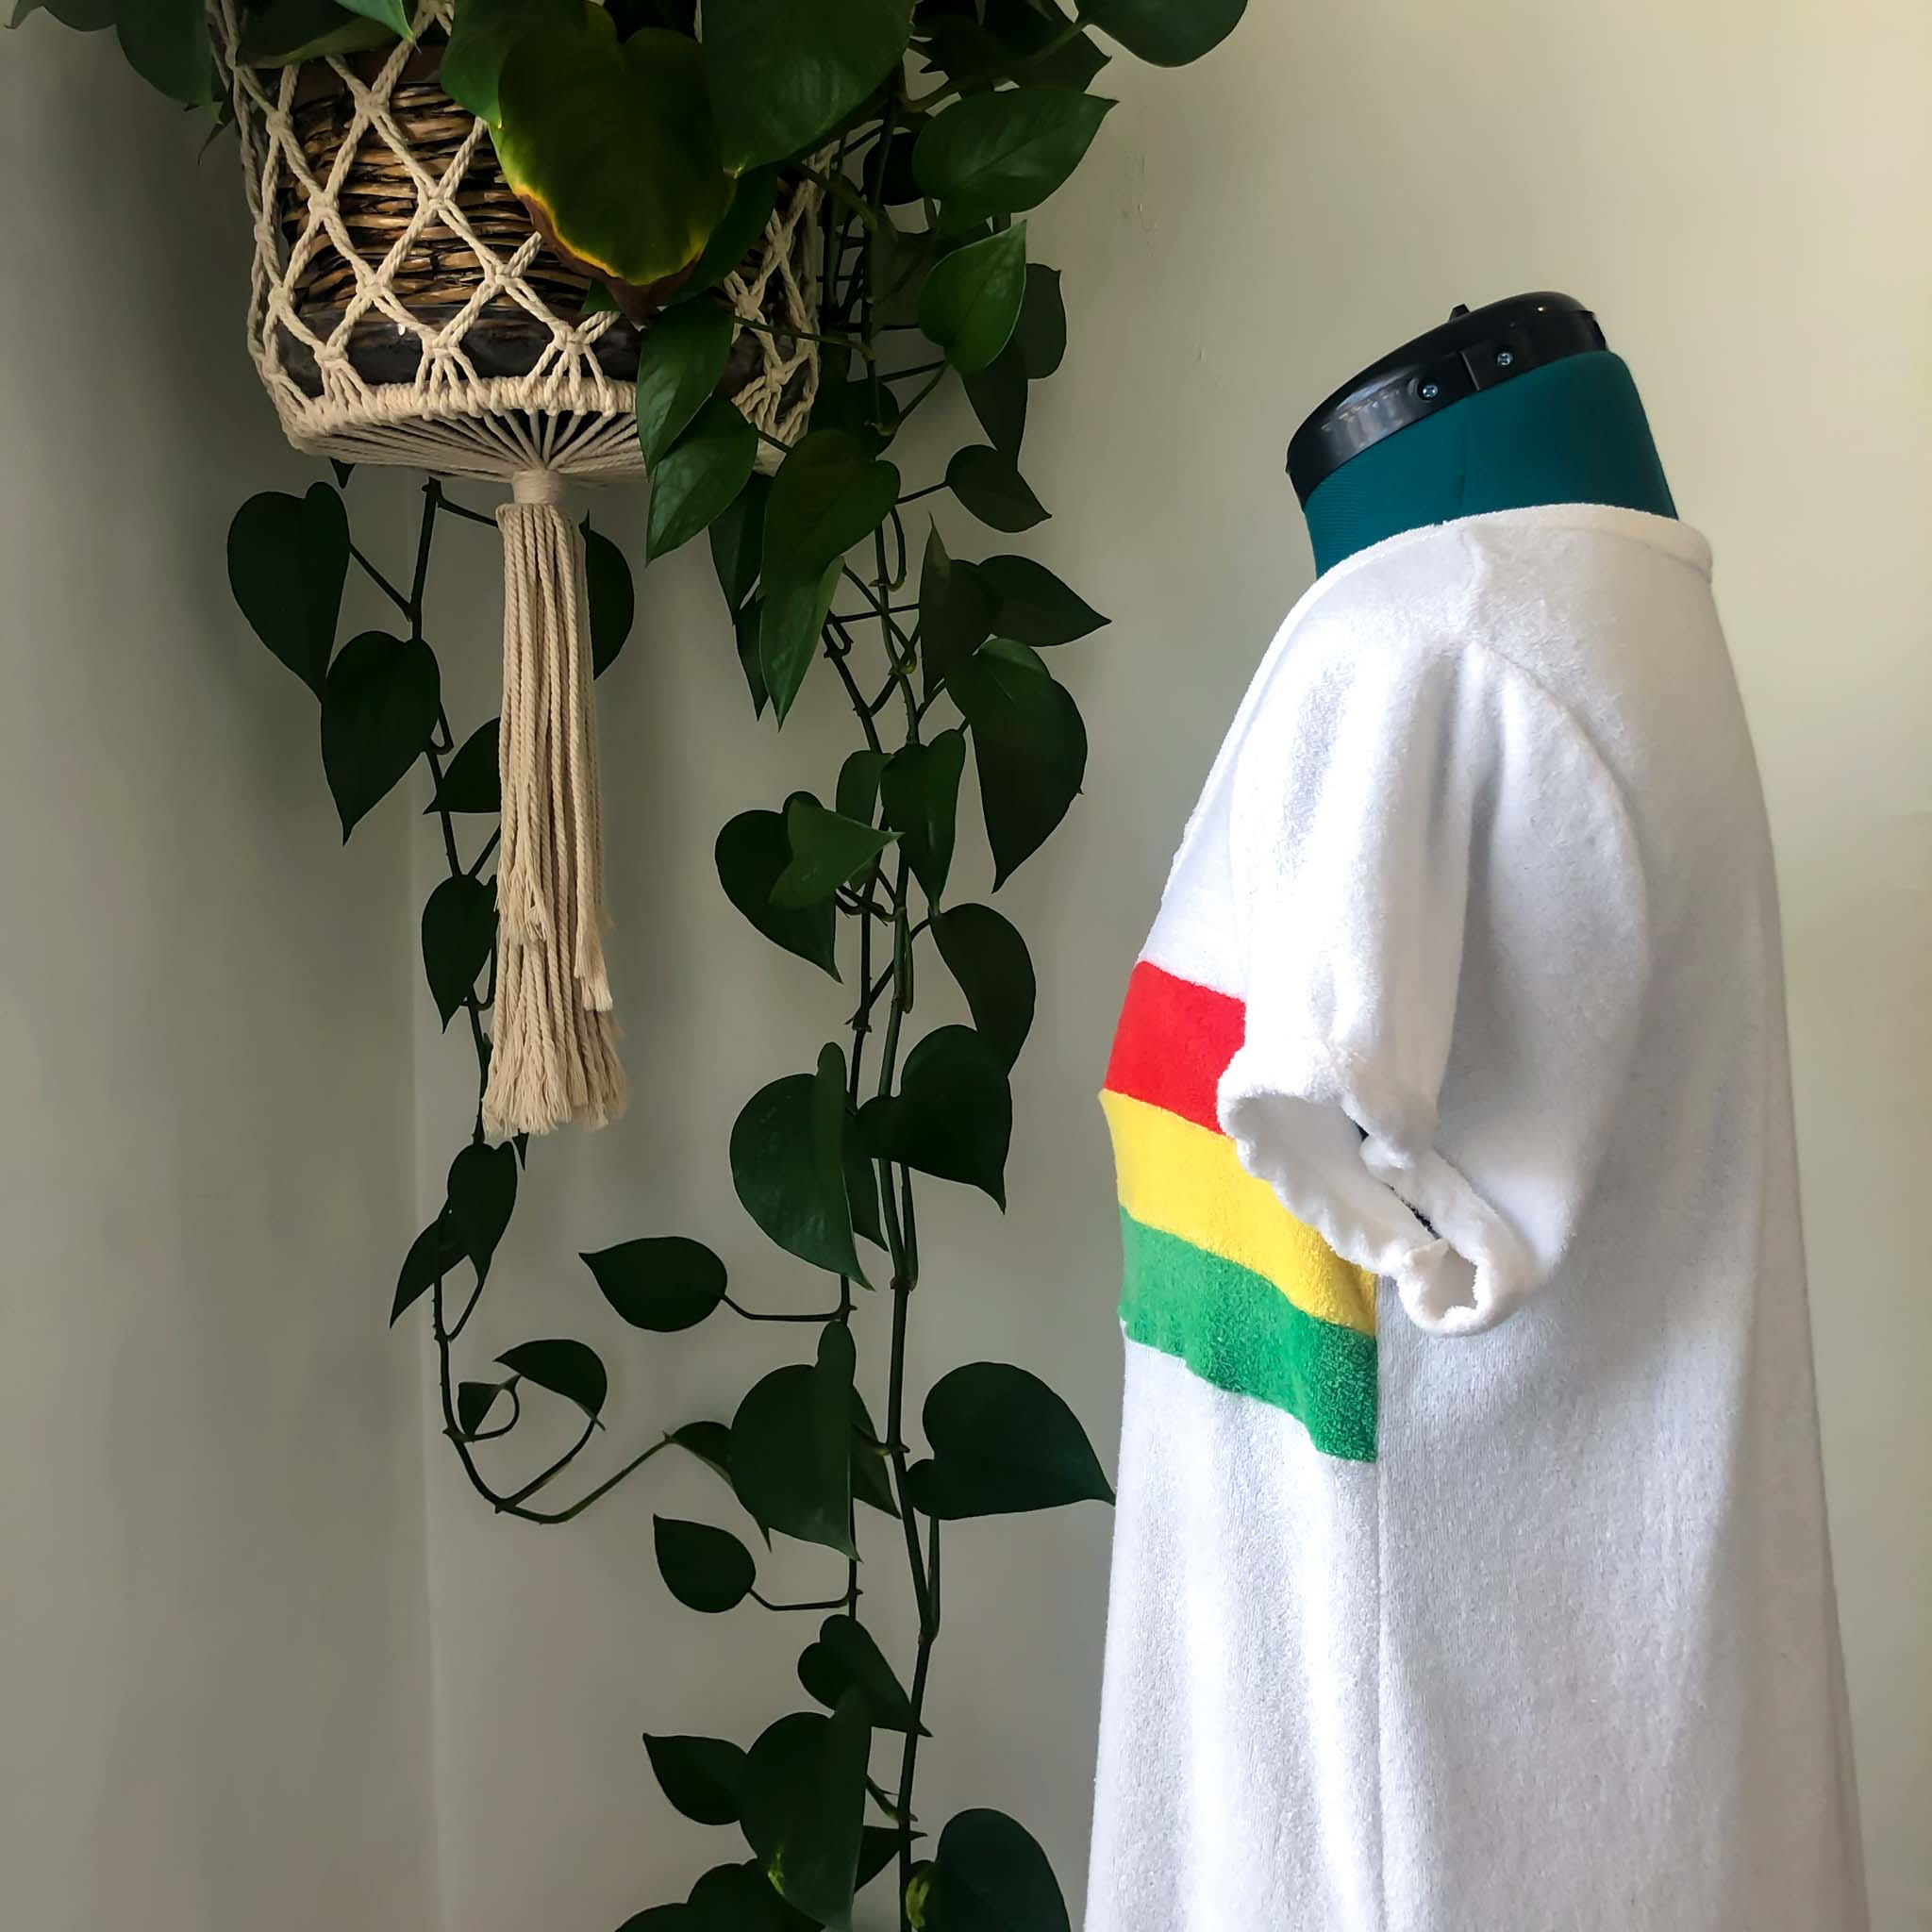 VINTAGE TERRY CLOTH POOLSIDE LOUNGE DRESS : MEDIUM - XL : THE RASTA MAXI